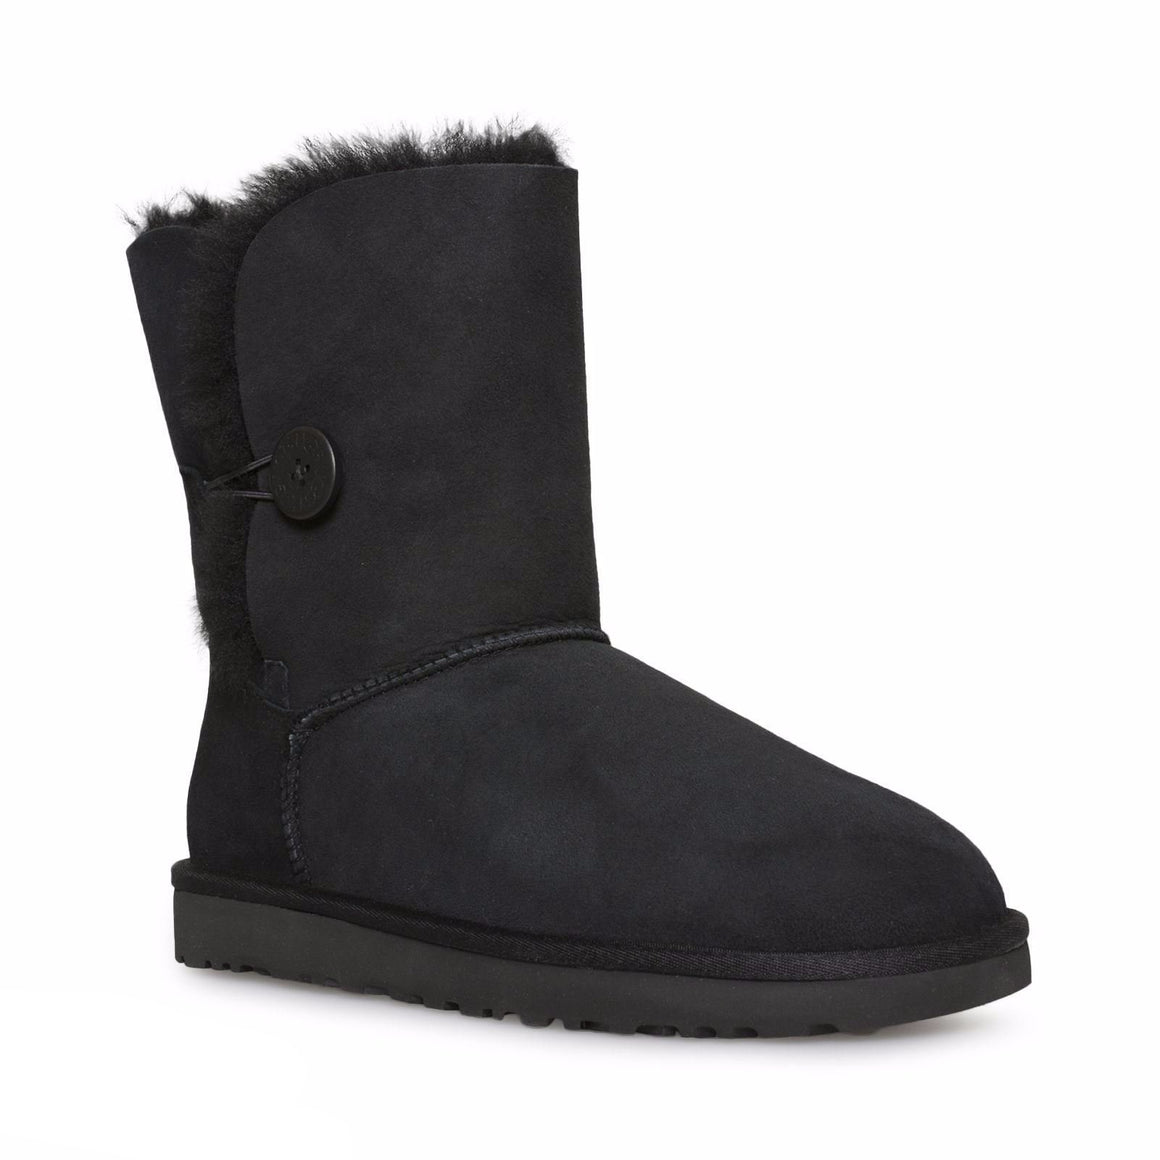 UGG Bailey Button II Black Boots - Youth